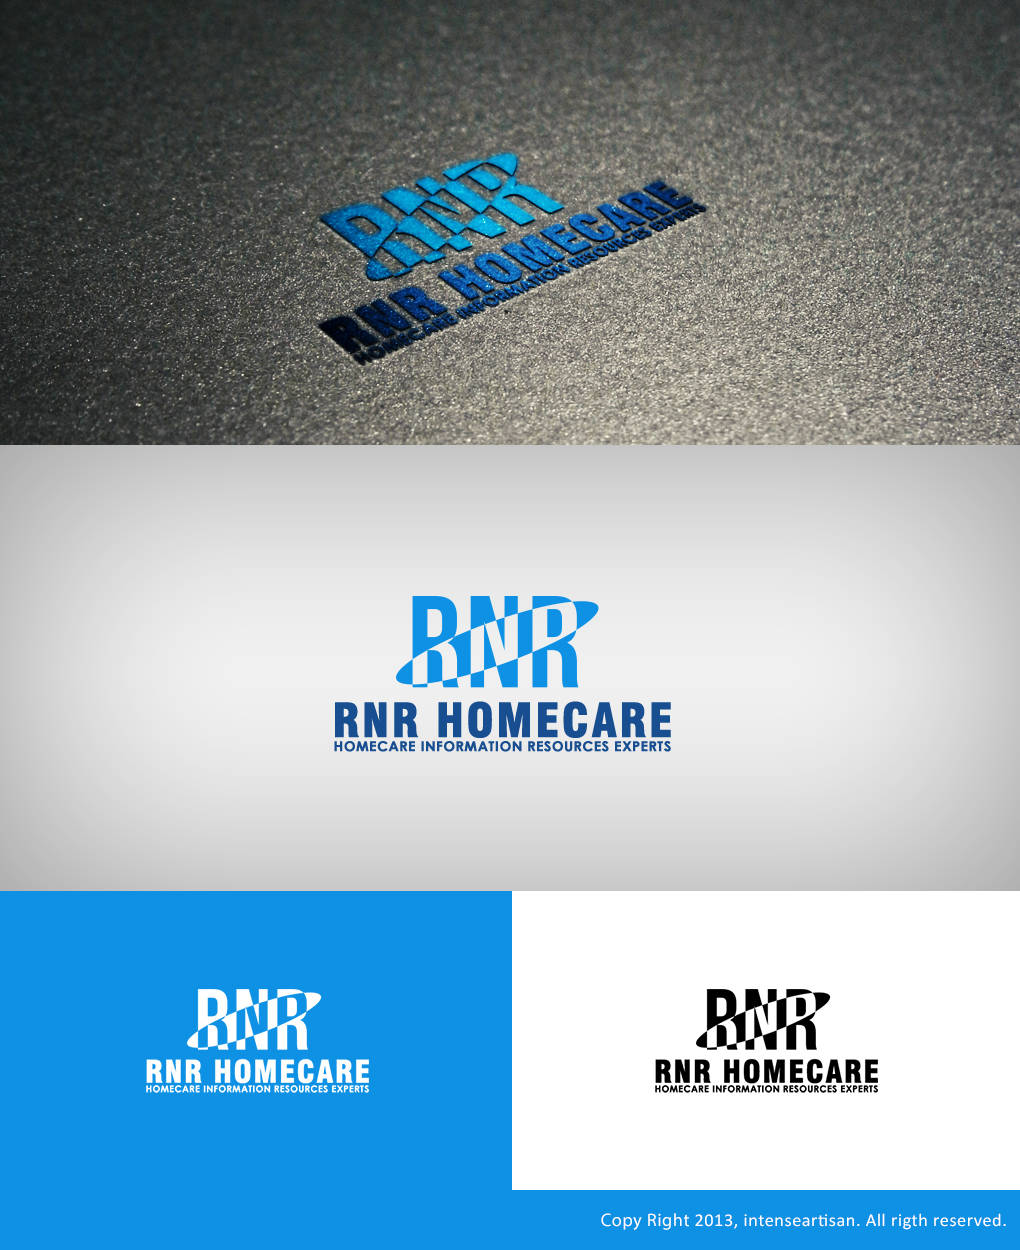 Logo Design by Virgilio Pineda III - Entry No. 144 in the Logo Design Contest Imaginative Logo Design for RNR HomeCare.